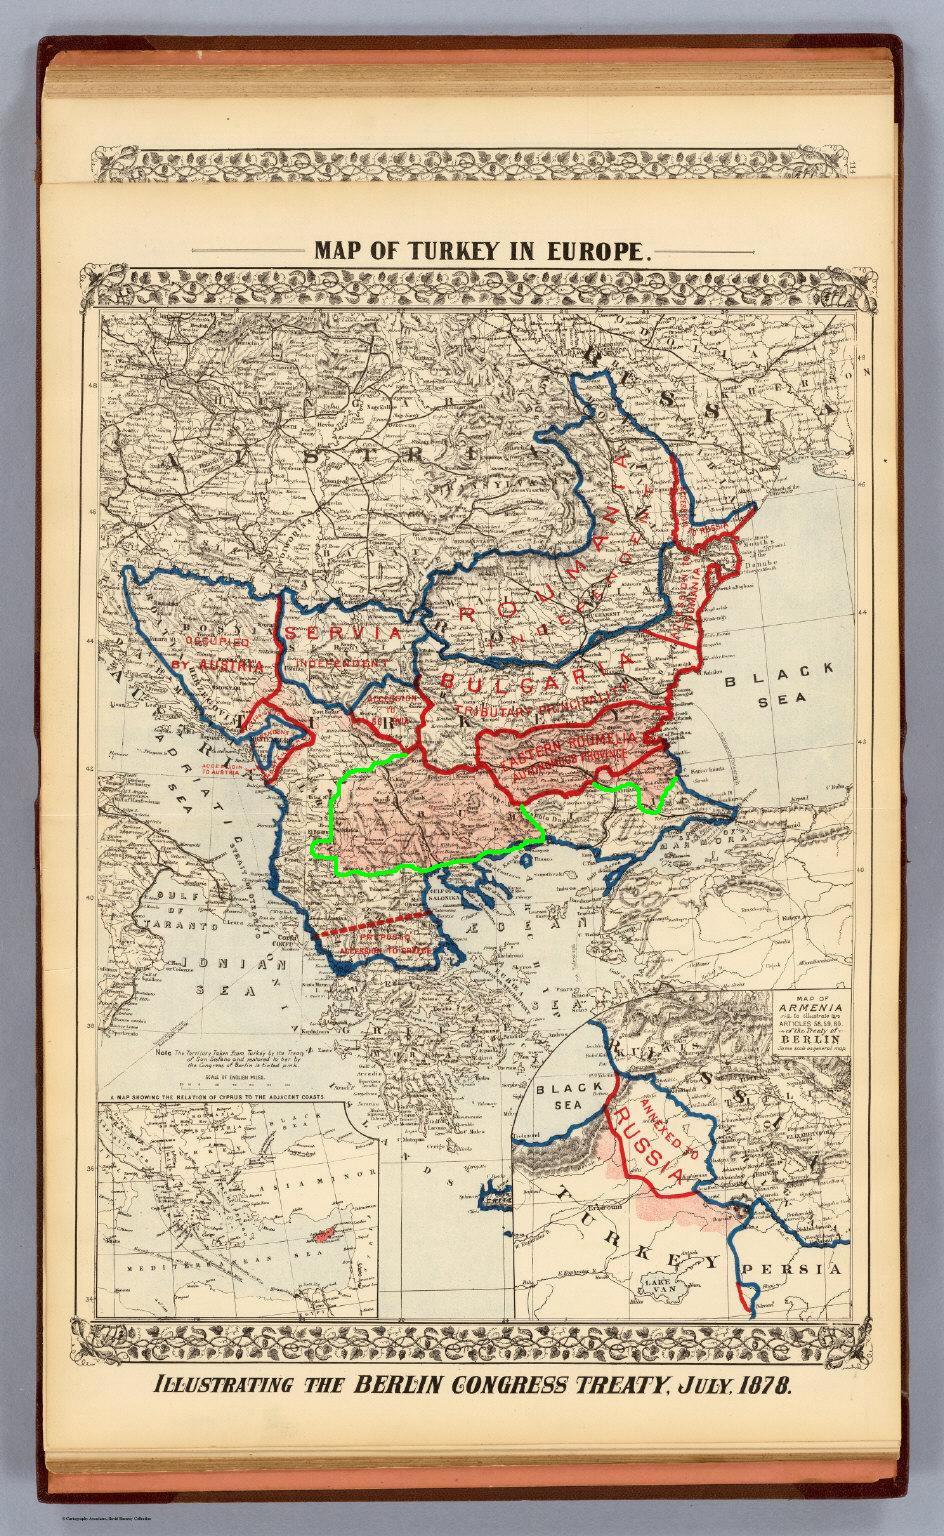 File:Results of the Treaty of Berlin 1878..jpg - Wikipedia, the ...